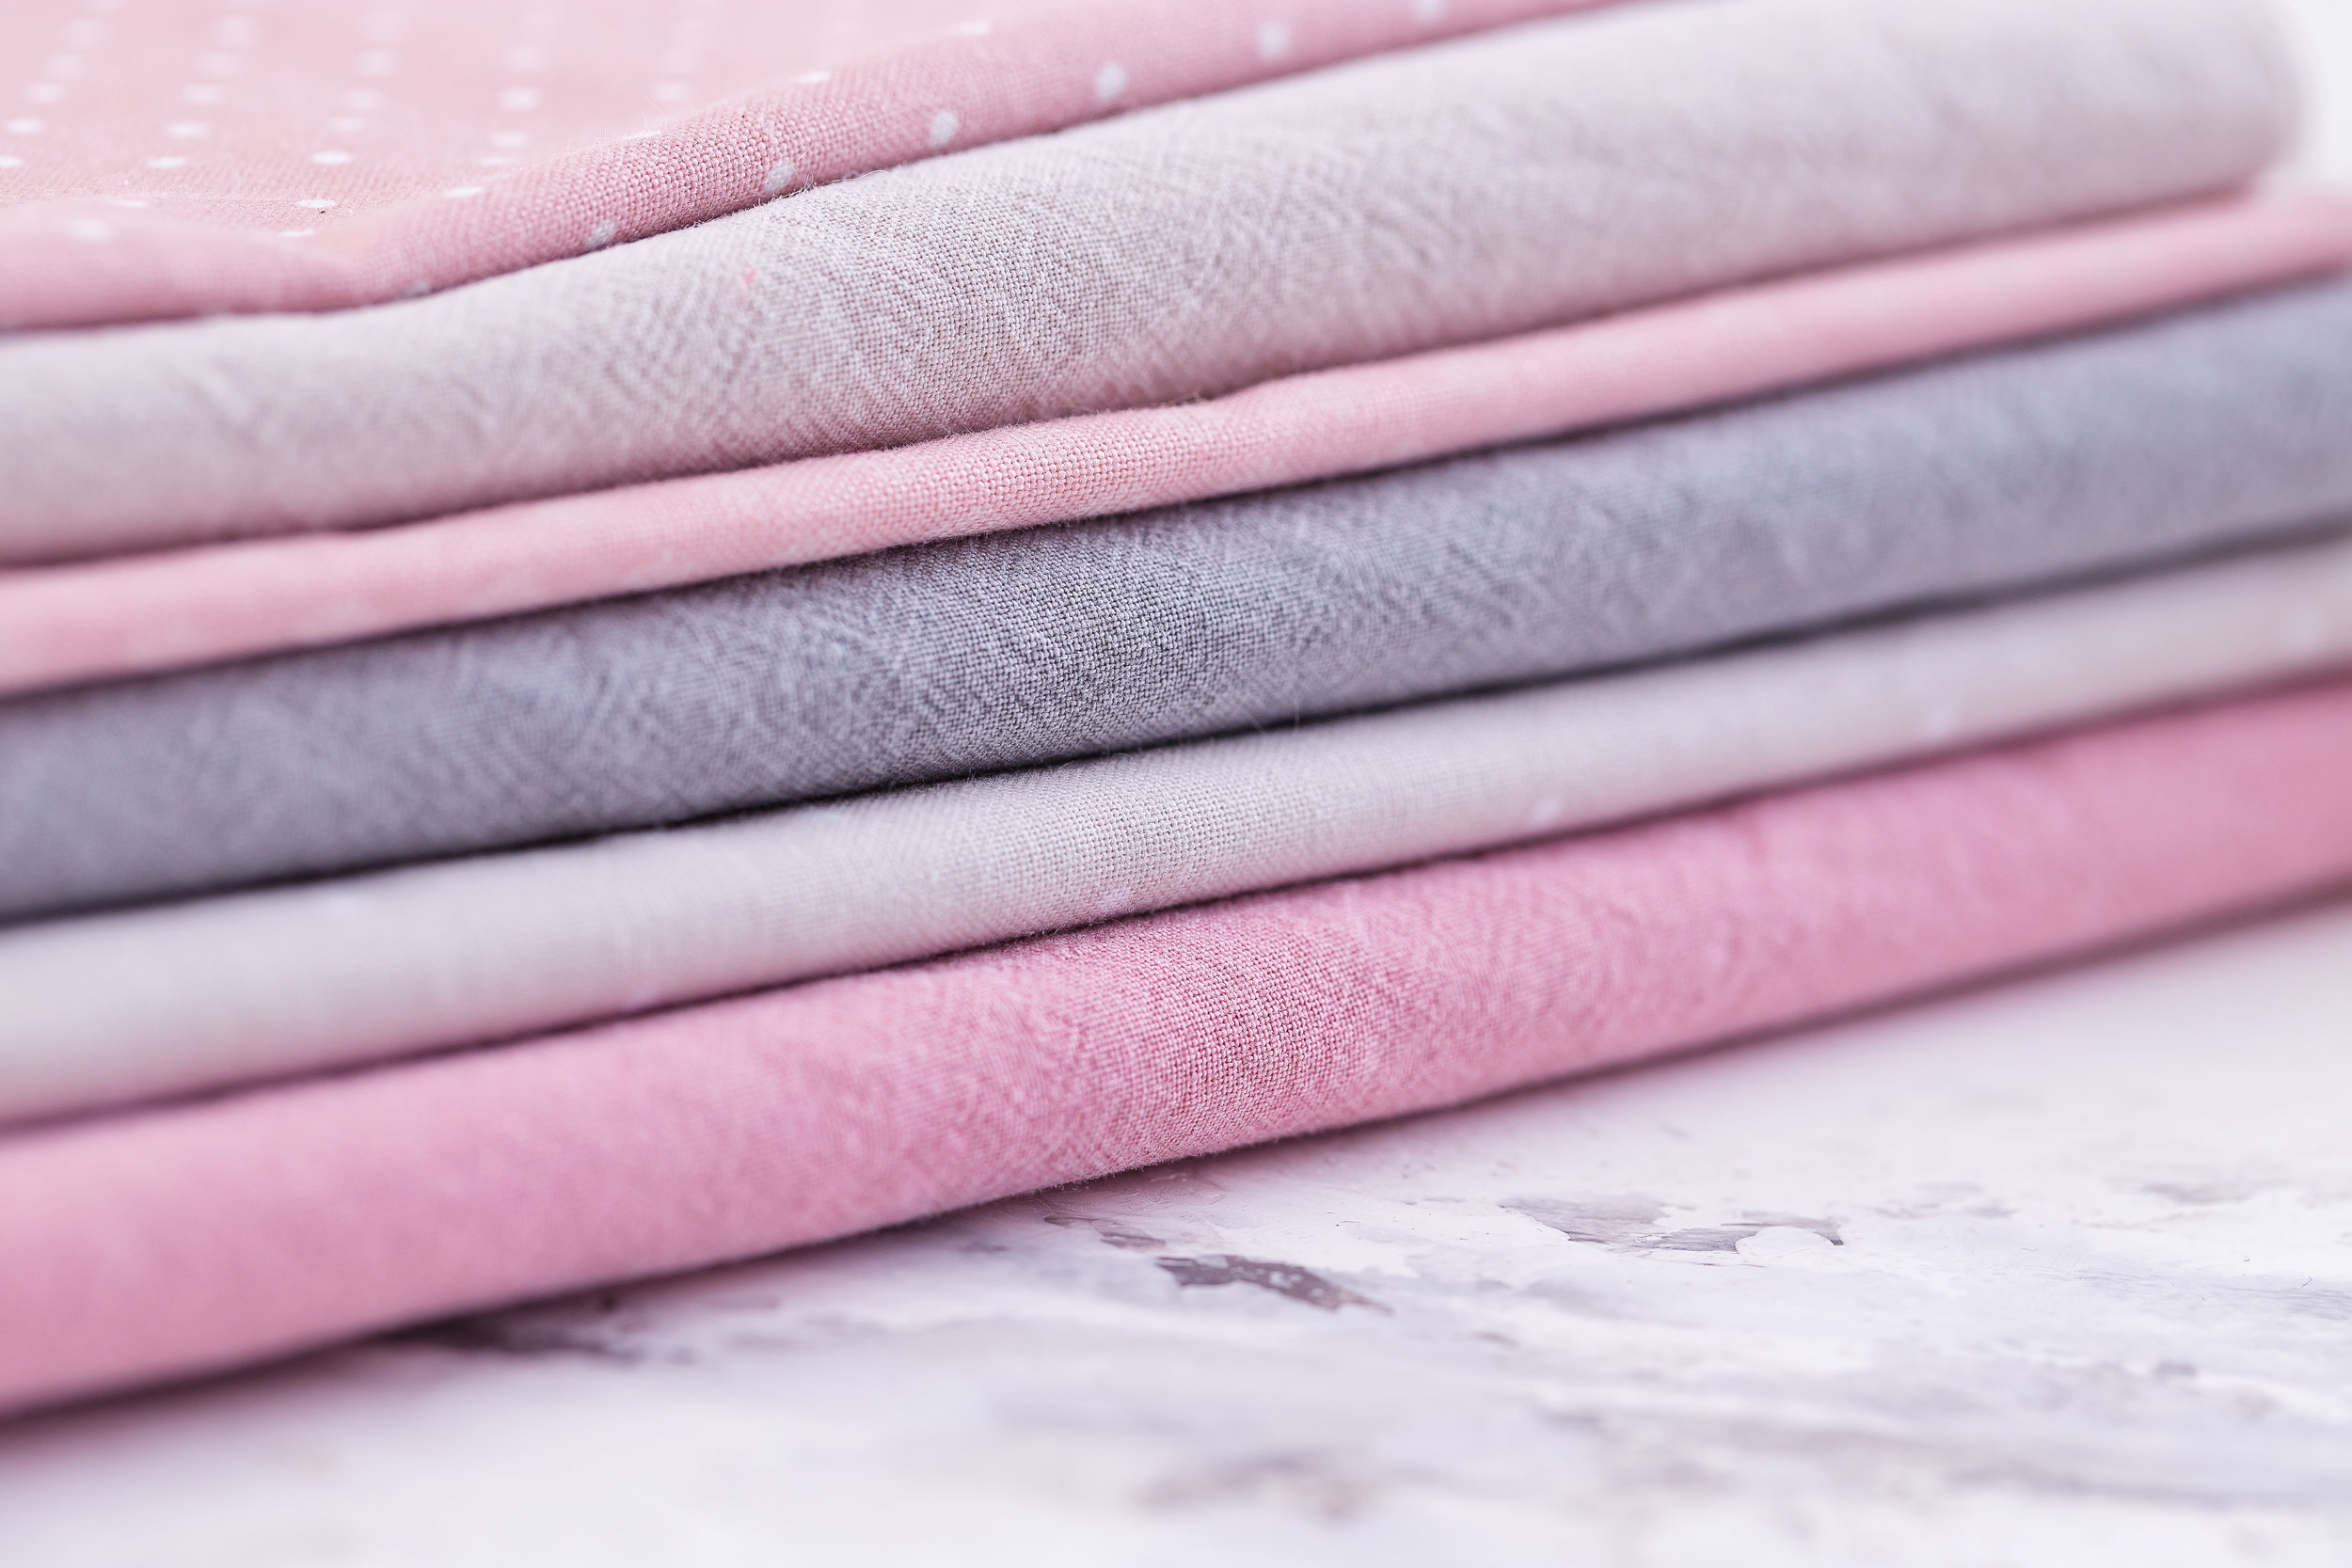 stack-of-fabrics-over-marble-table-PQRAF8Z.jpg